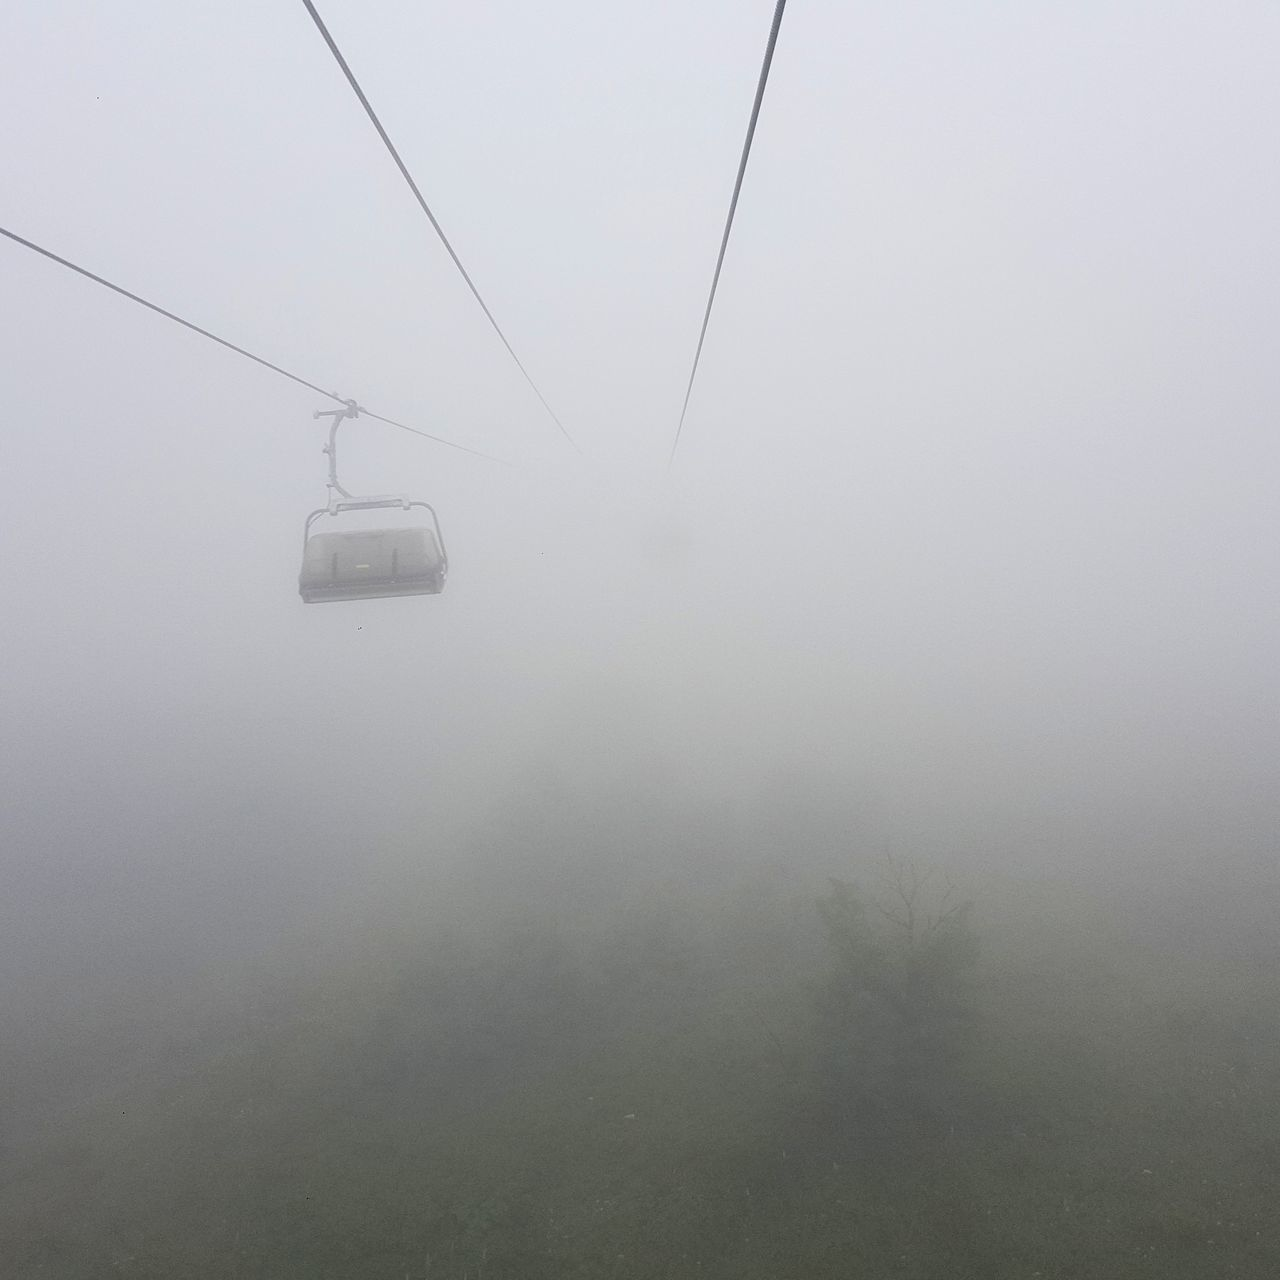 fog, foggy, nature, cable, overhead cable car, transportation, beauty in nature, no people, day, tranquil scene, winter, cold temperature, mist, scenics, outdoors, hanging, ski lift, sky, hazy, mountain